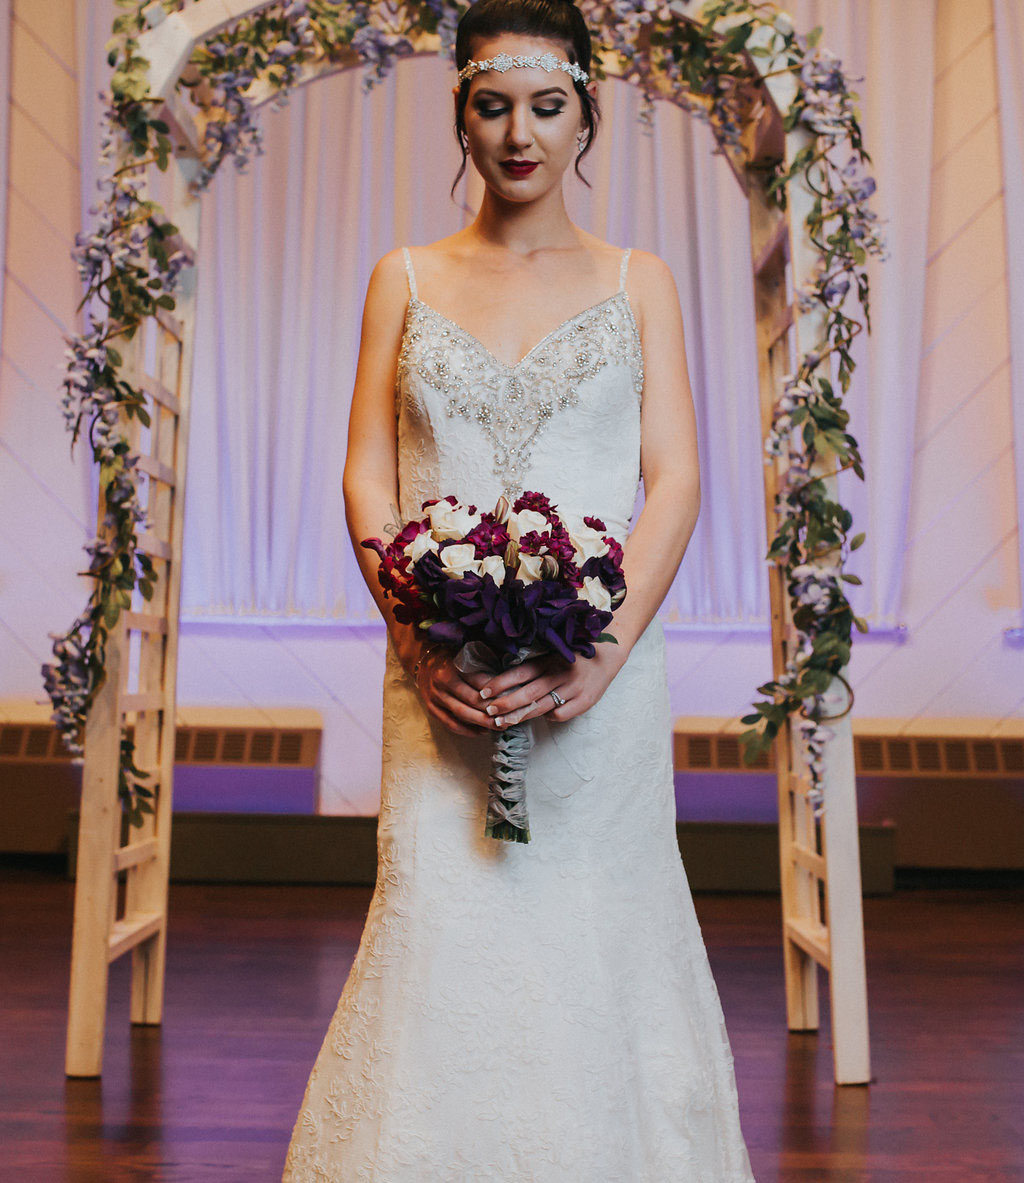 Simple Yet Elegant Purple & Grey Wedding · Rock N Roll Bride. Gum Tree Tea Length Wedding Dresses. Champagne Wedding Gowns With Sleeves. Pnina Tornai Sheath Wedding Dresses. Casual Wedding Dresses Australia. Wedding Dresses With Colored Accents. Cheap Wedding Dresses In Houston. Beach Wedding Dresses Tea Length. Wedding Dress Mermaid Body Type